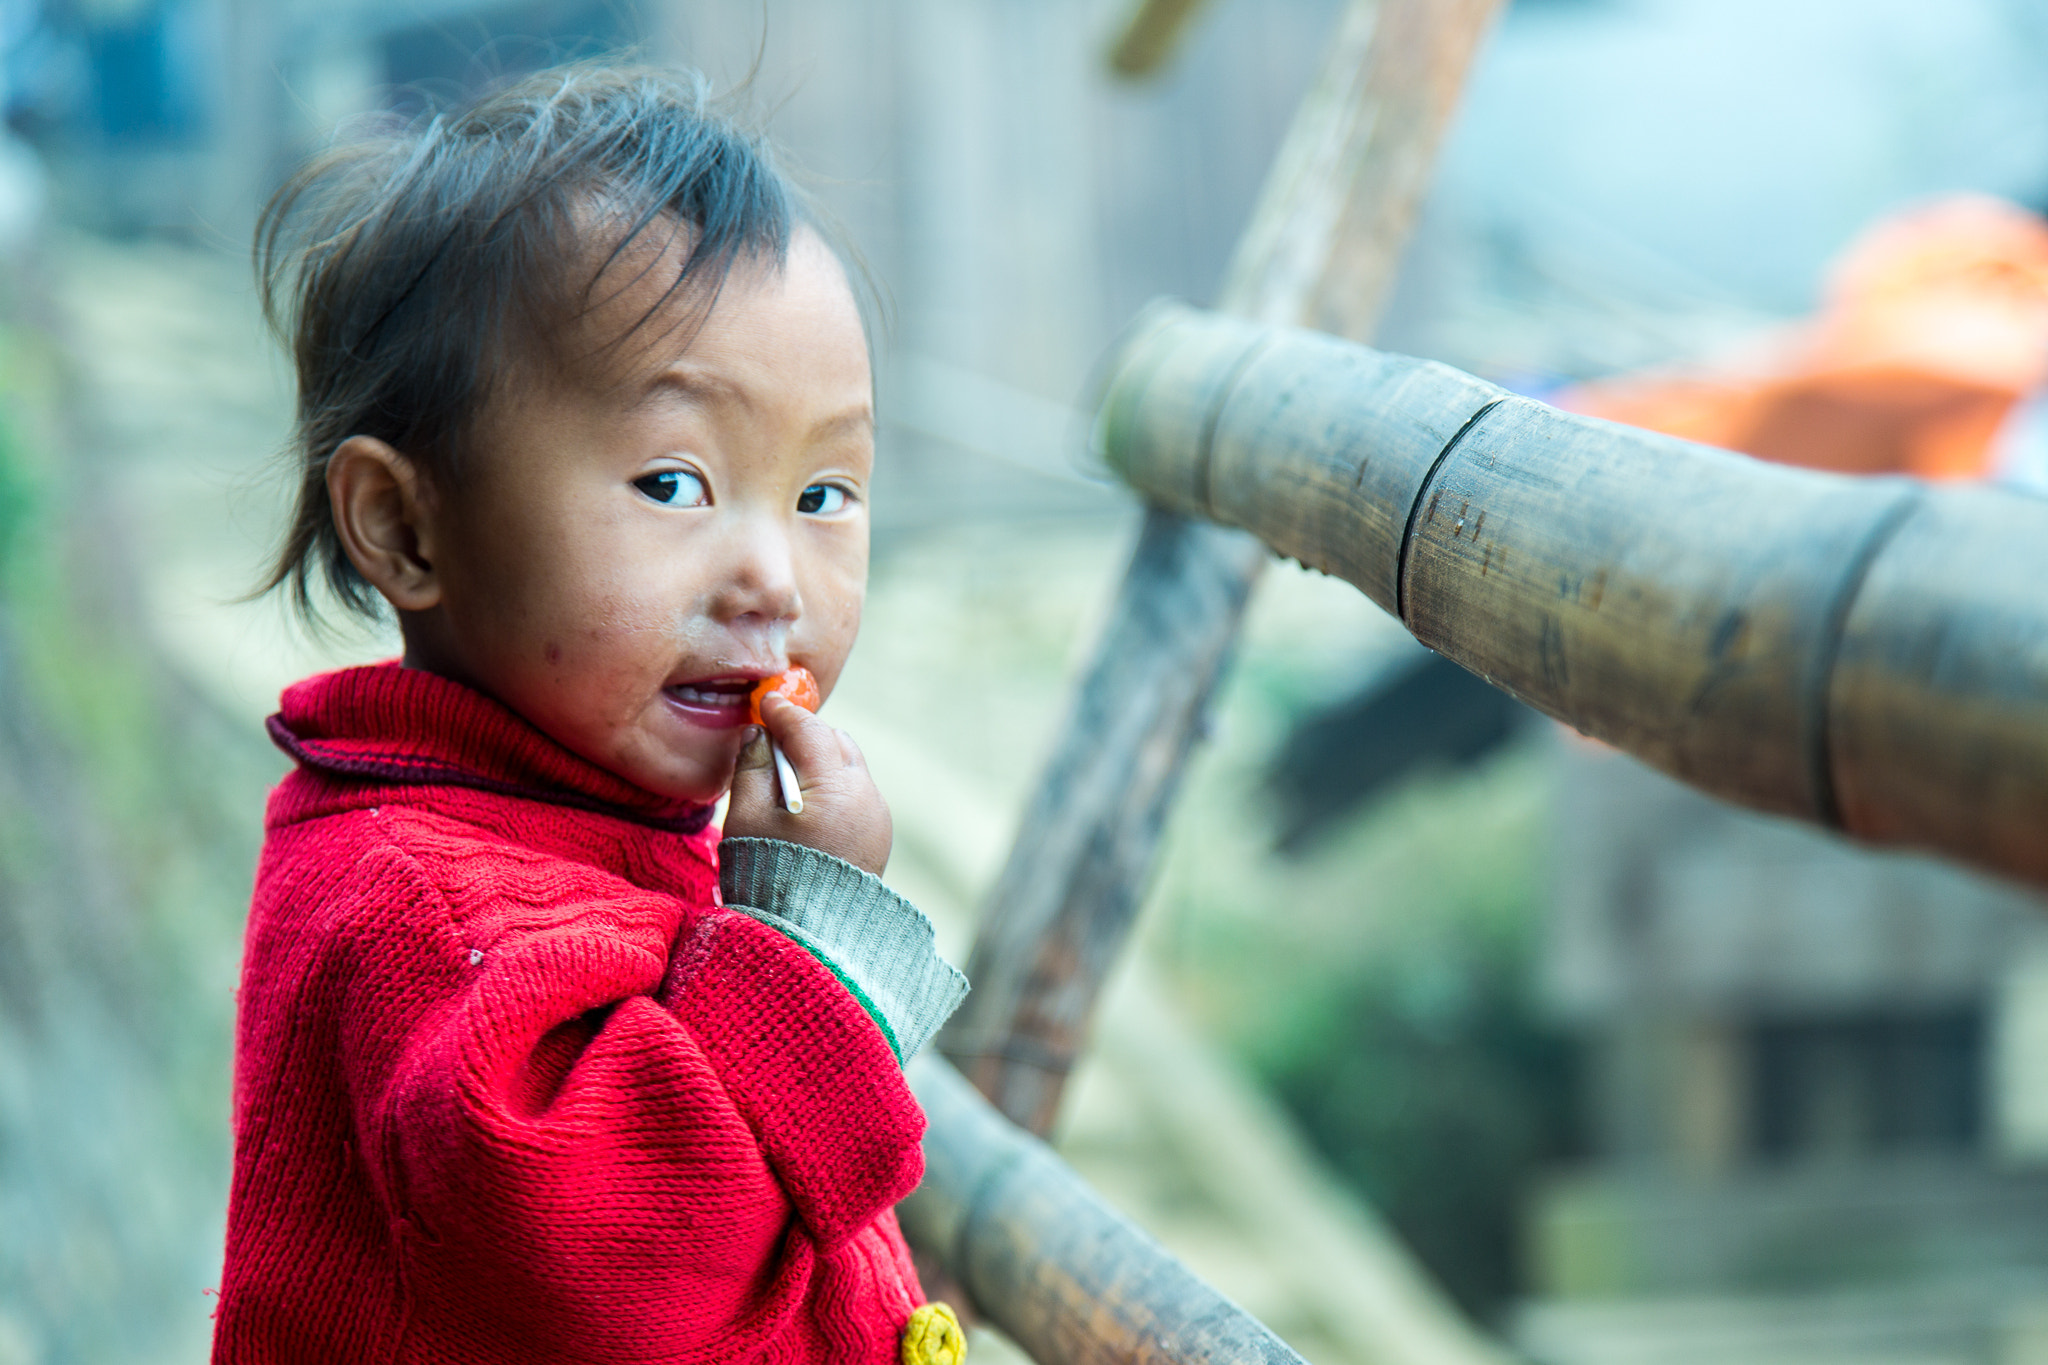 Photograph Child With Candy by Aaron Von Hagen on 500px